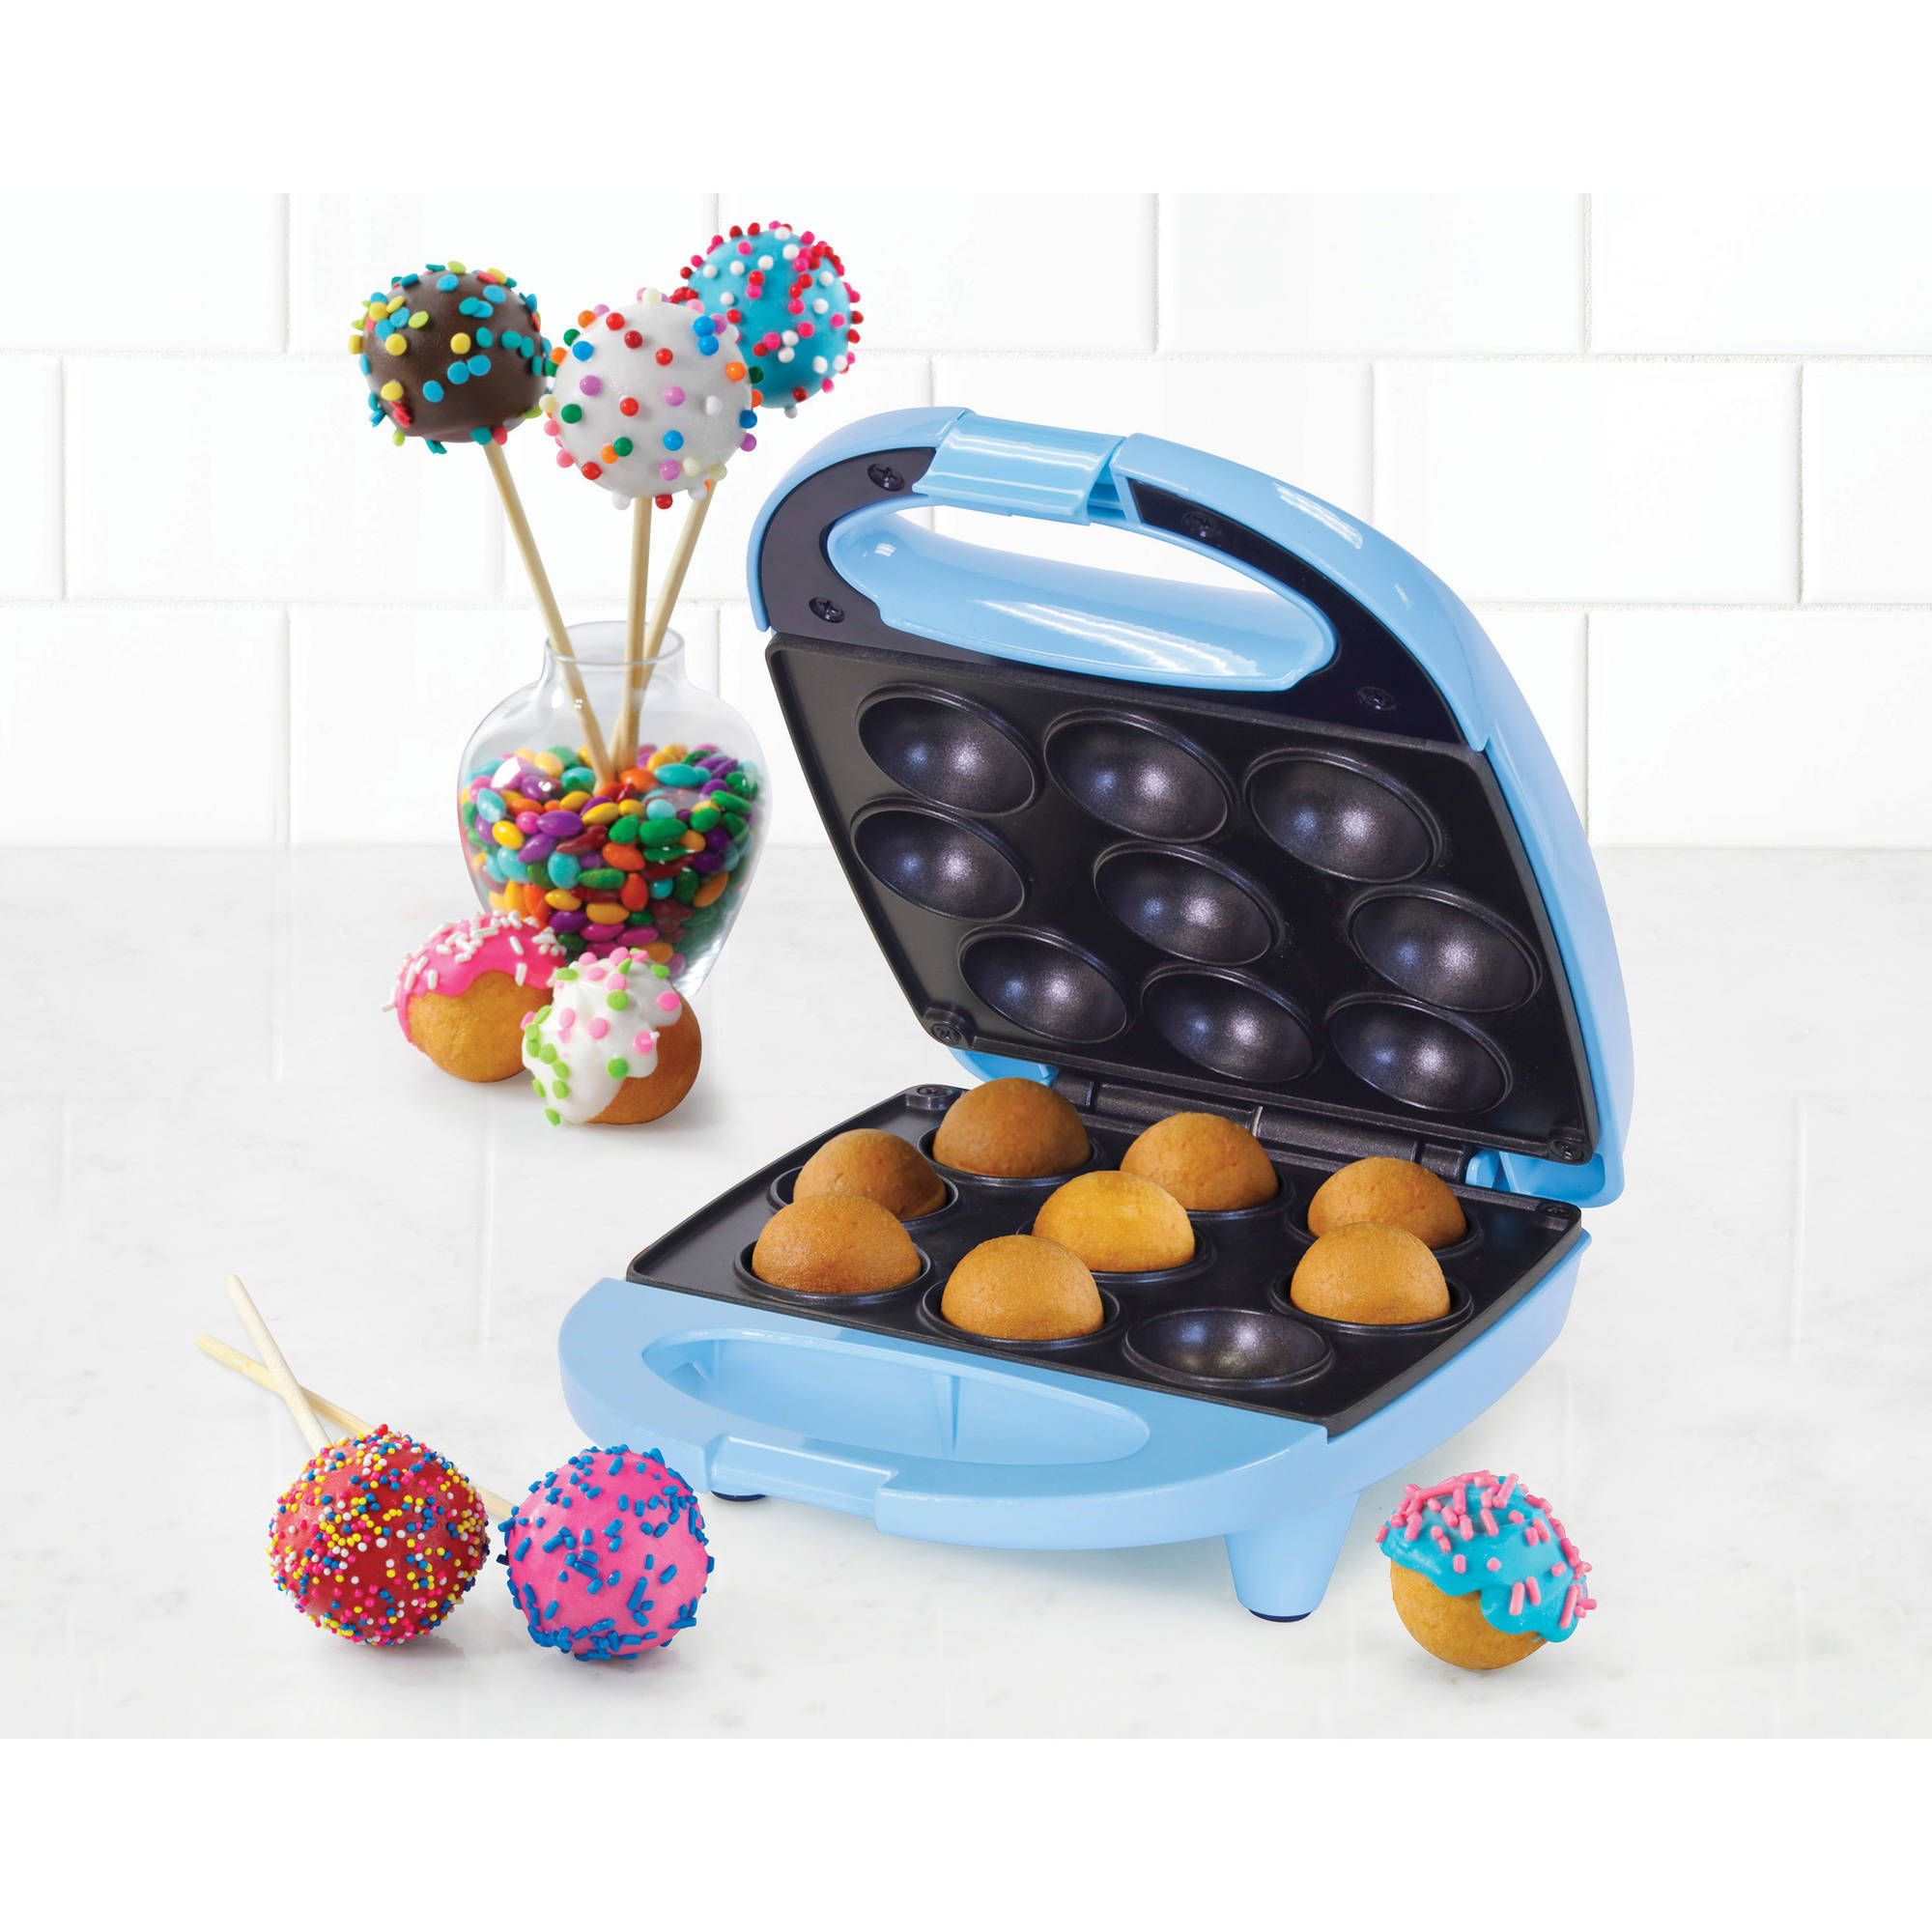 Nostalgia CPB400 Cake Pop Maker